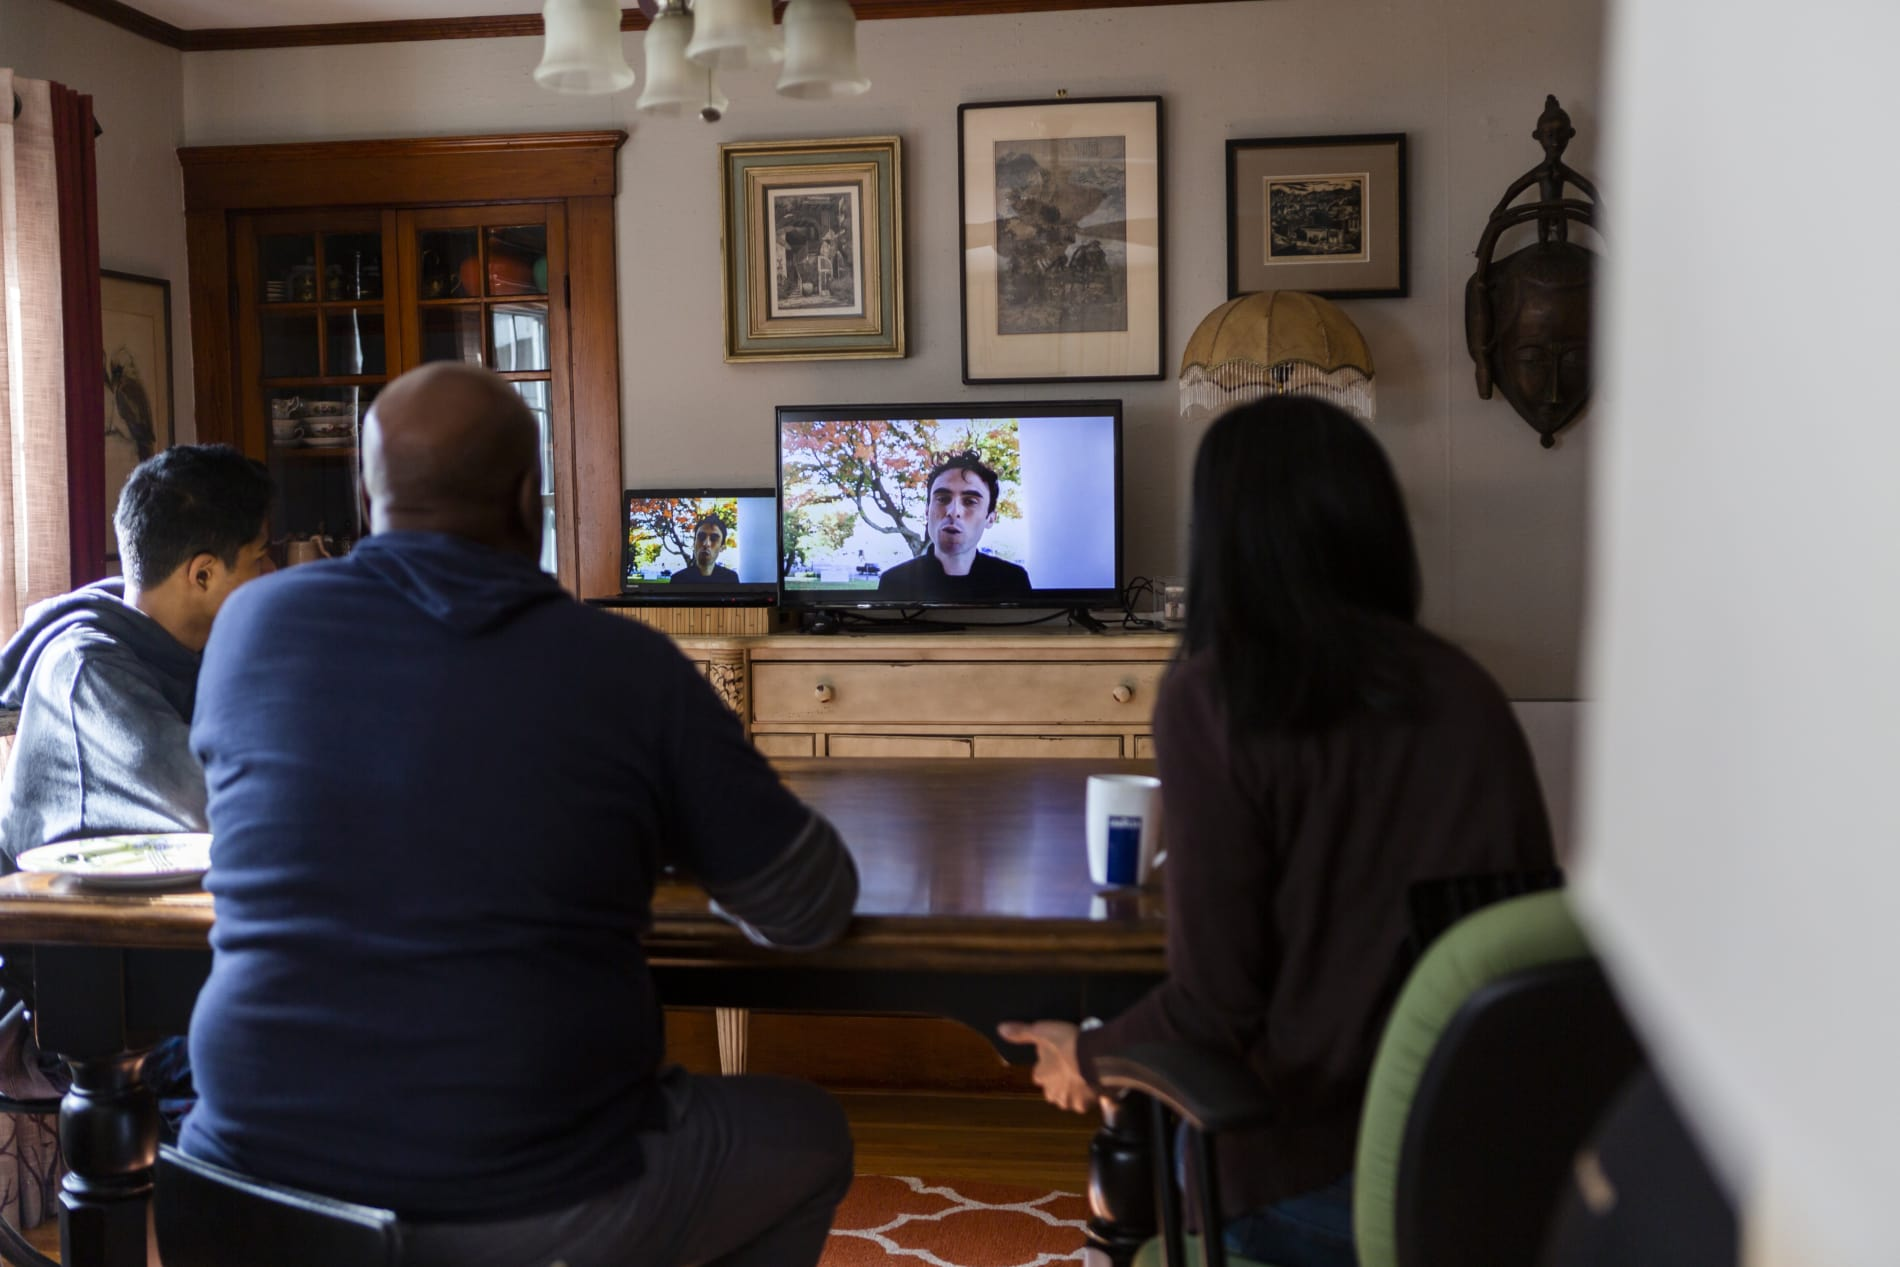 A family gathers in their living room to watch Wellesley Village Church's livestreamed worship service